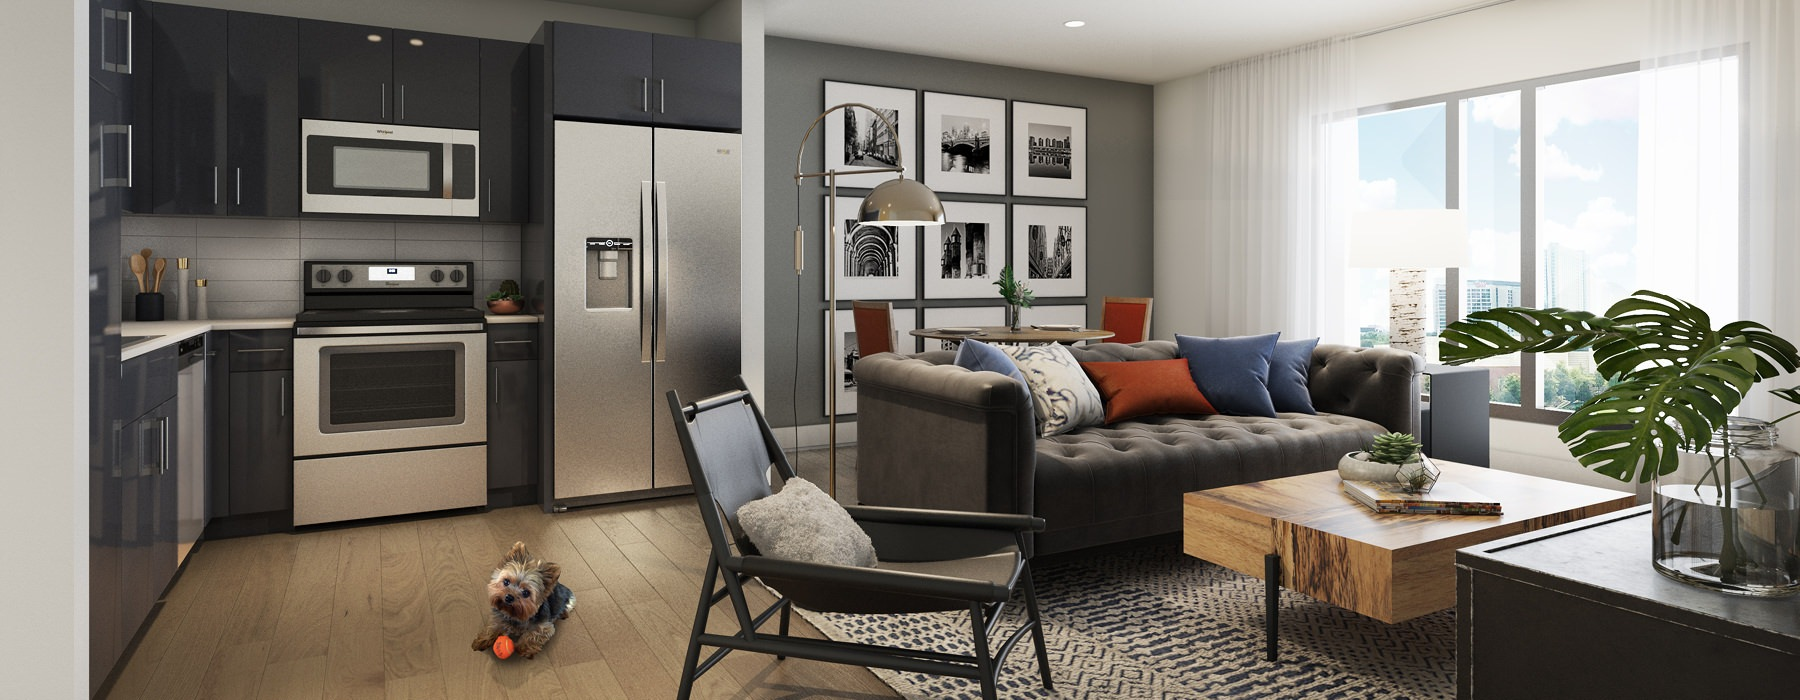 Living space is next to kitchen with a large window